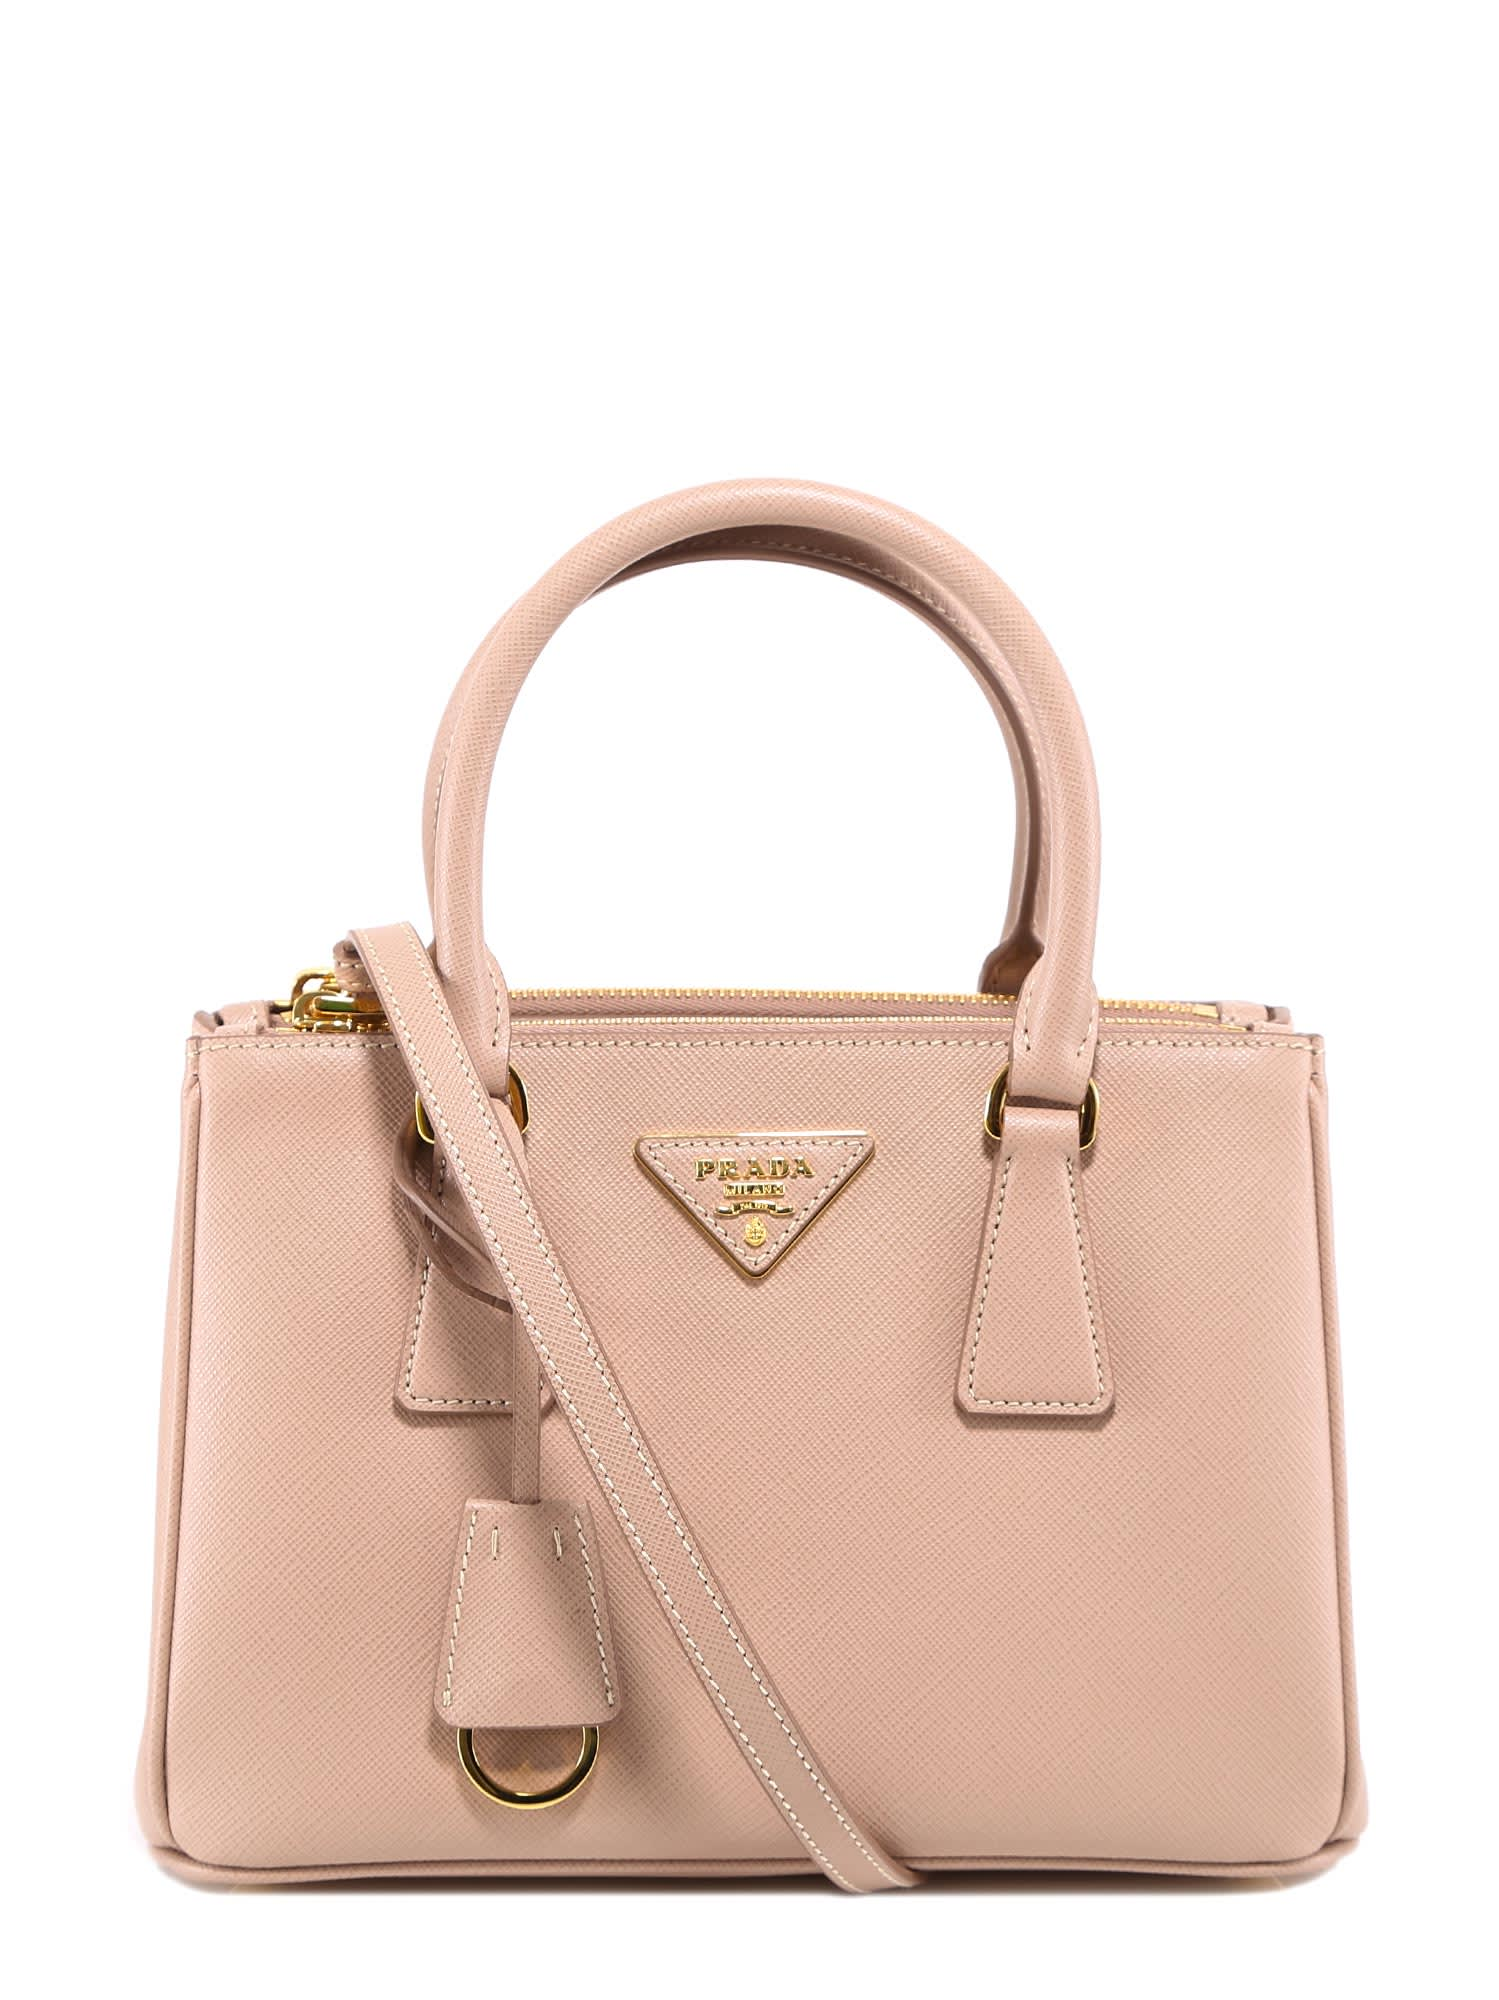 Prada Double-zip Top Tote